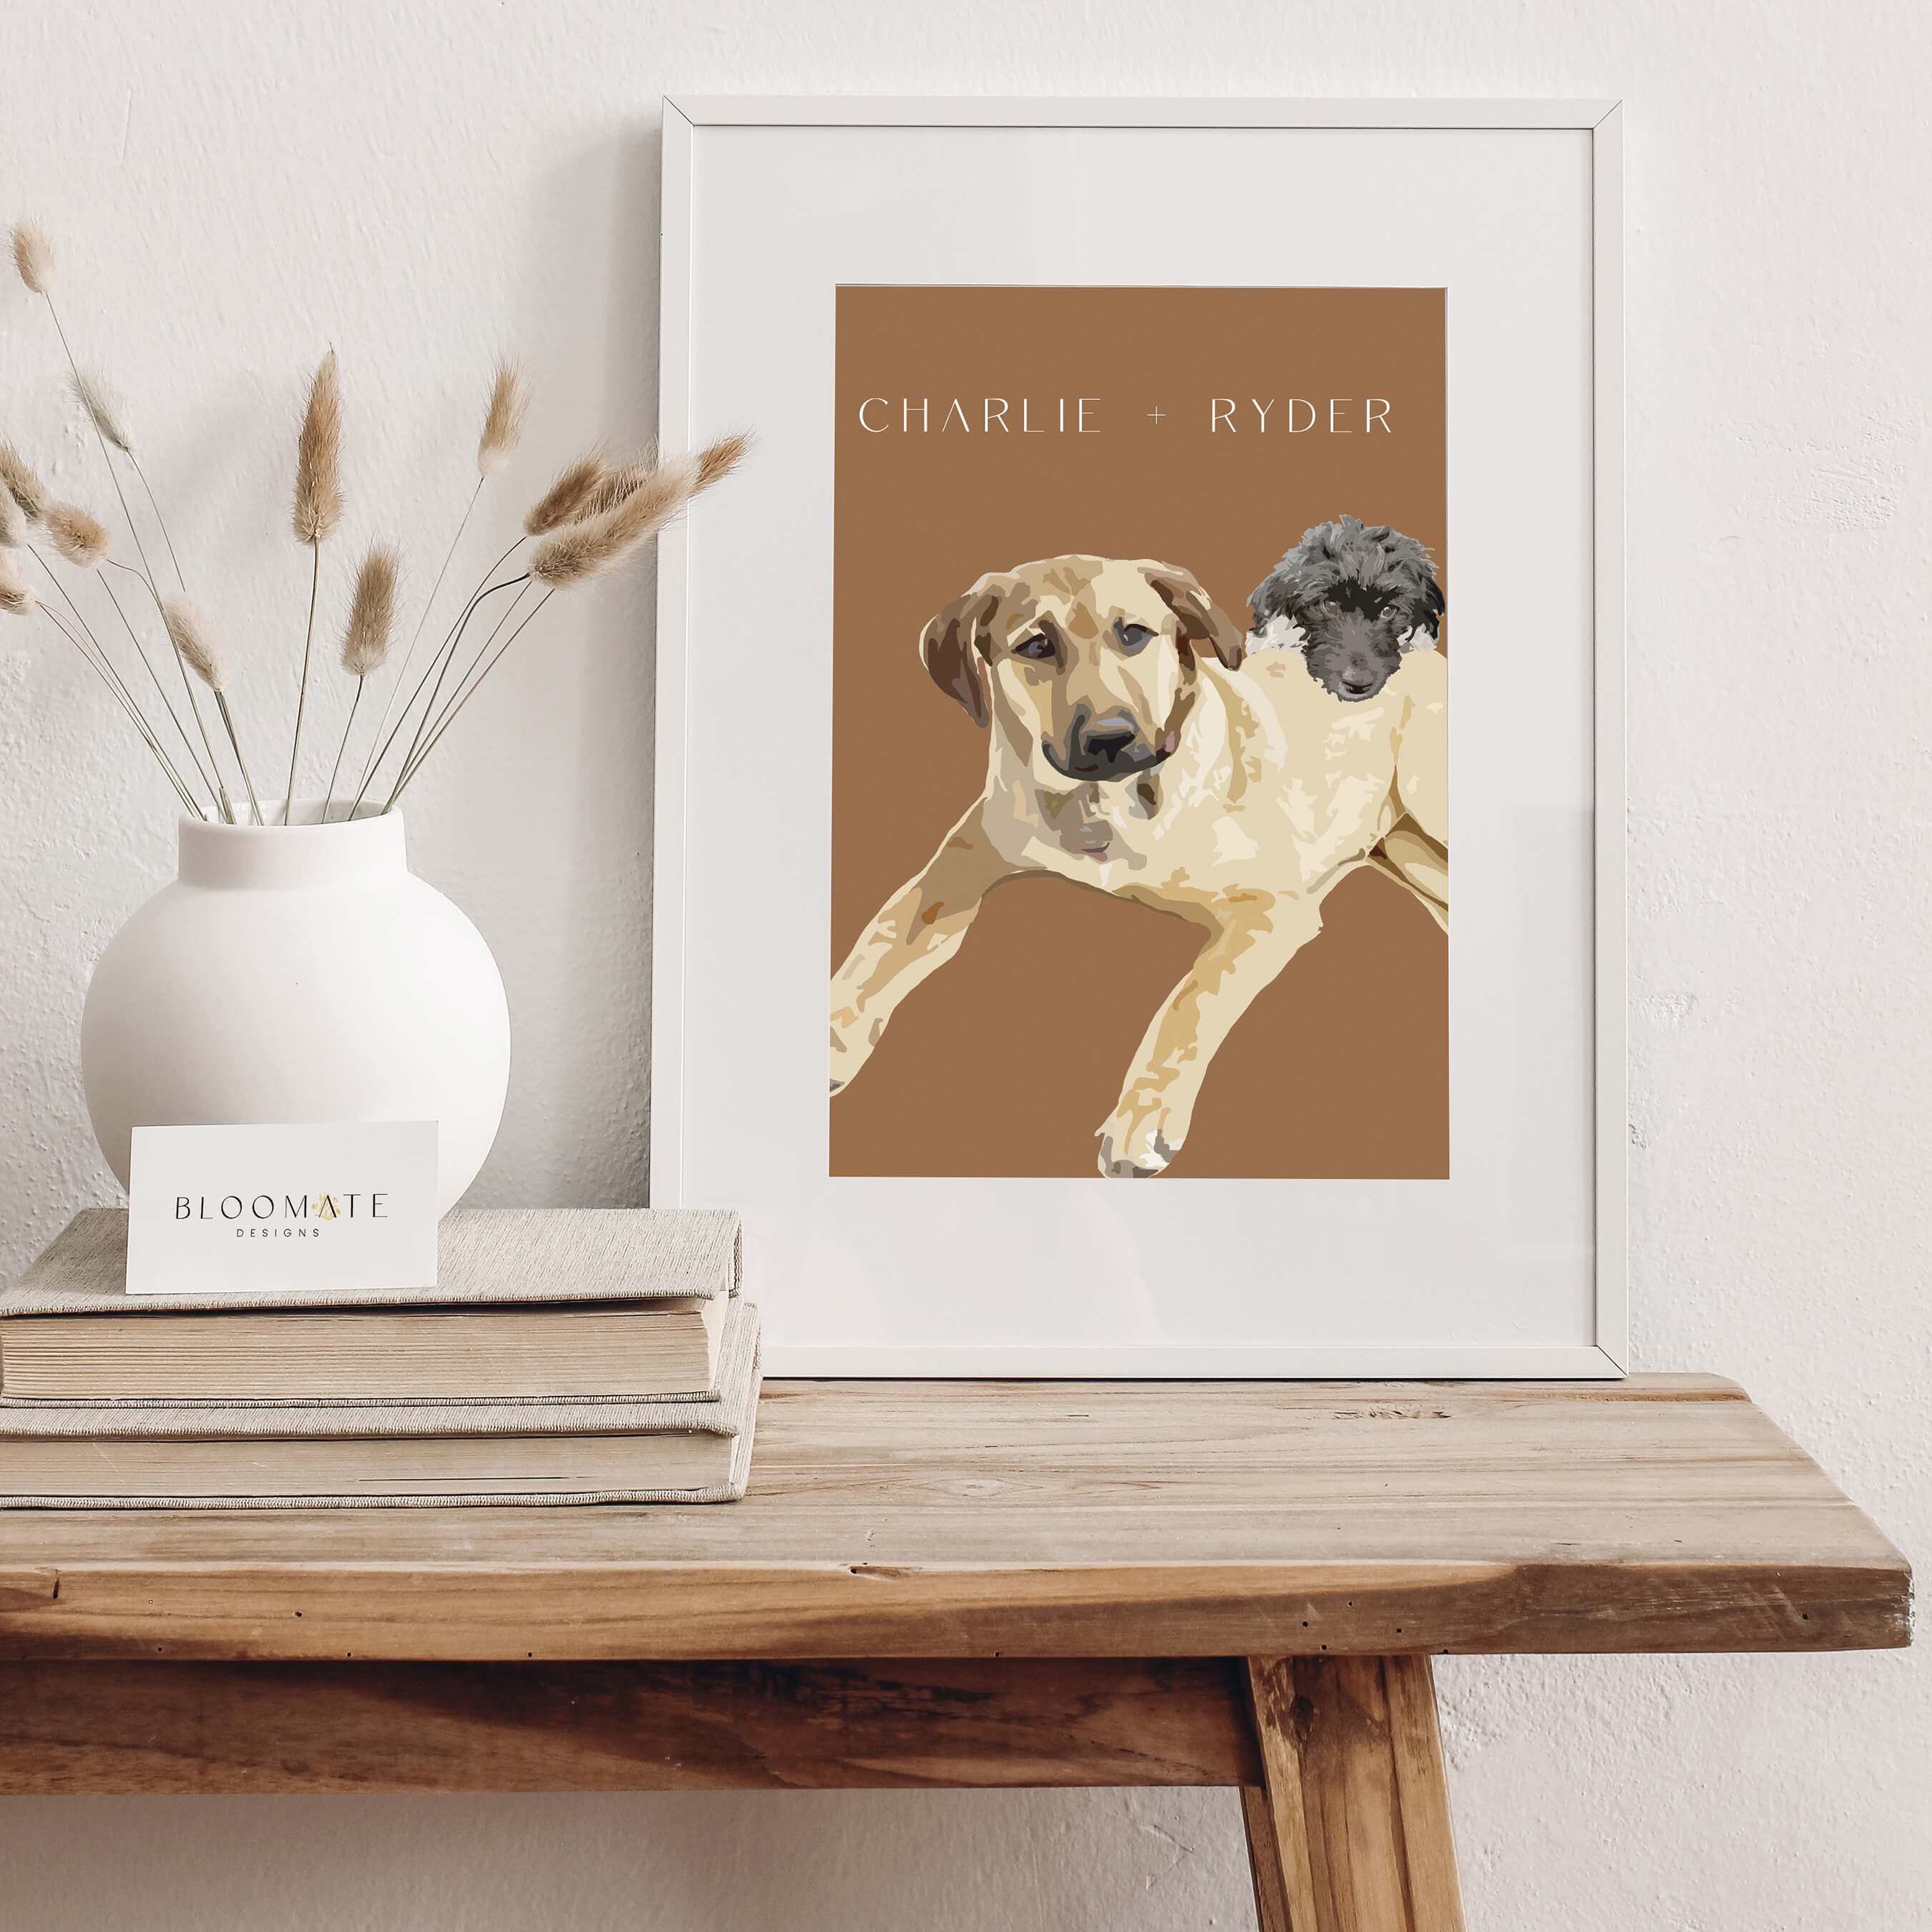 Charlie and Ryder Graphic Illustration Bloomate Pet Portraits